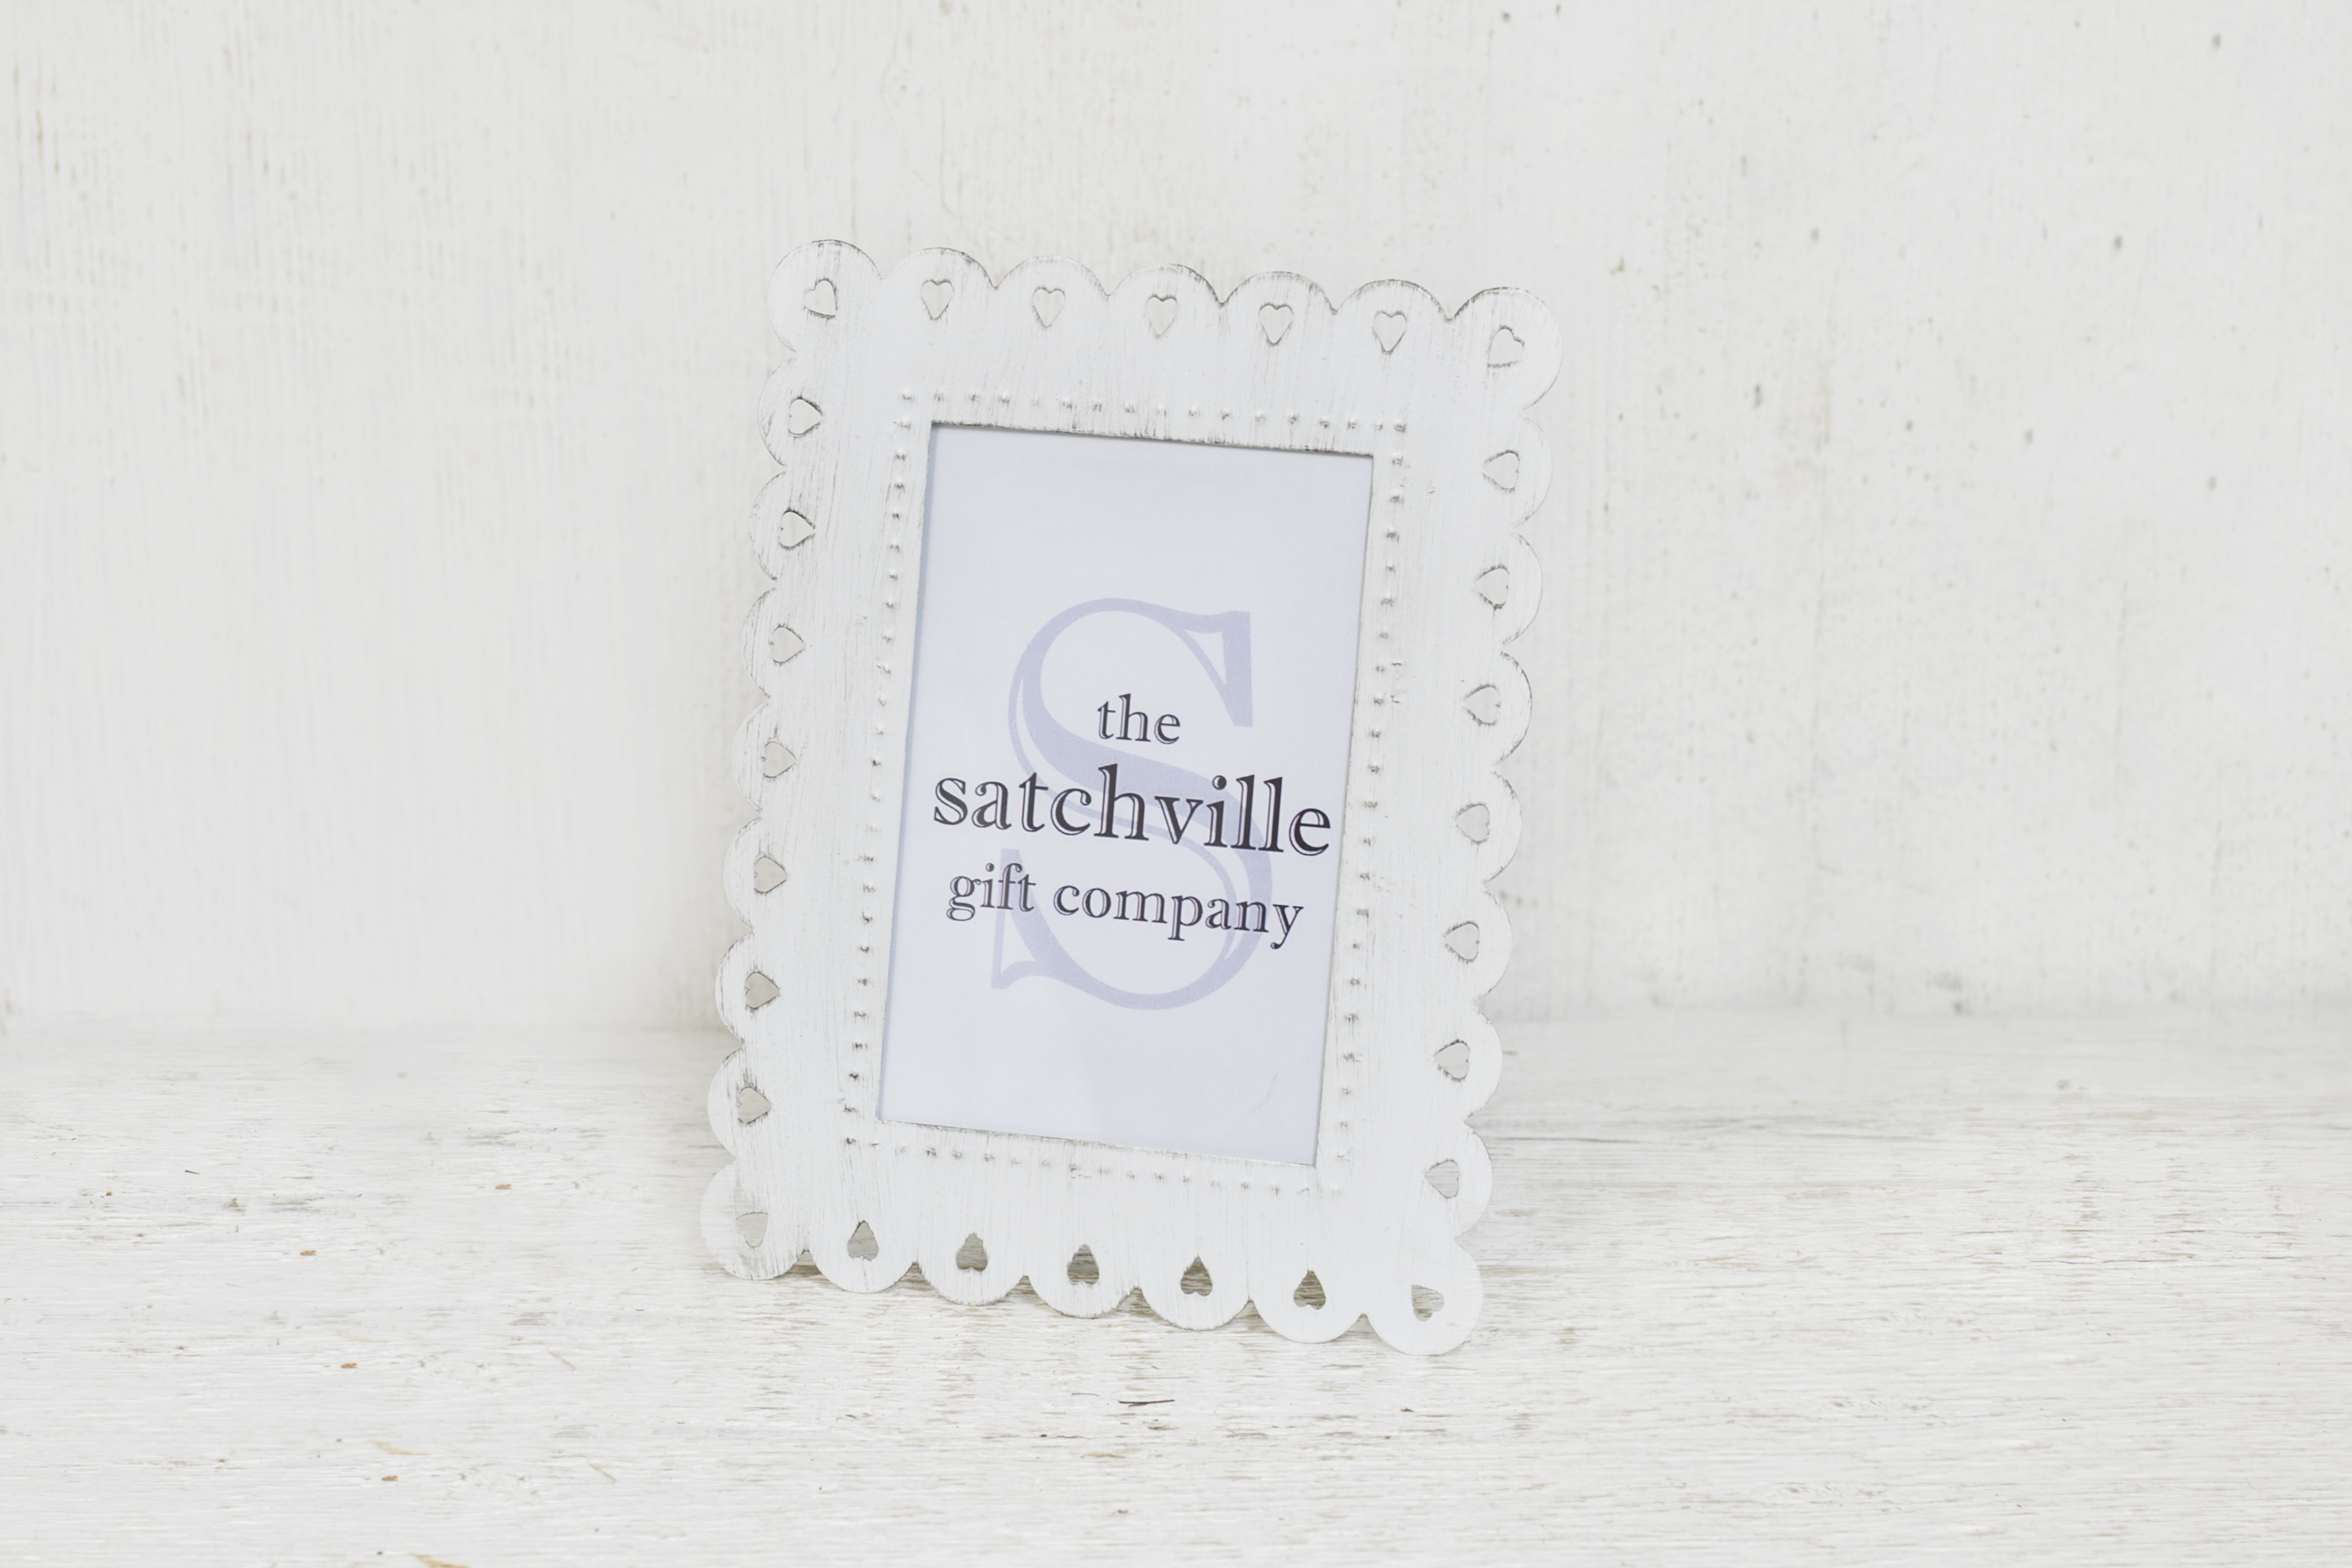 XM990042 - The Satchville Gift Company